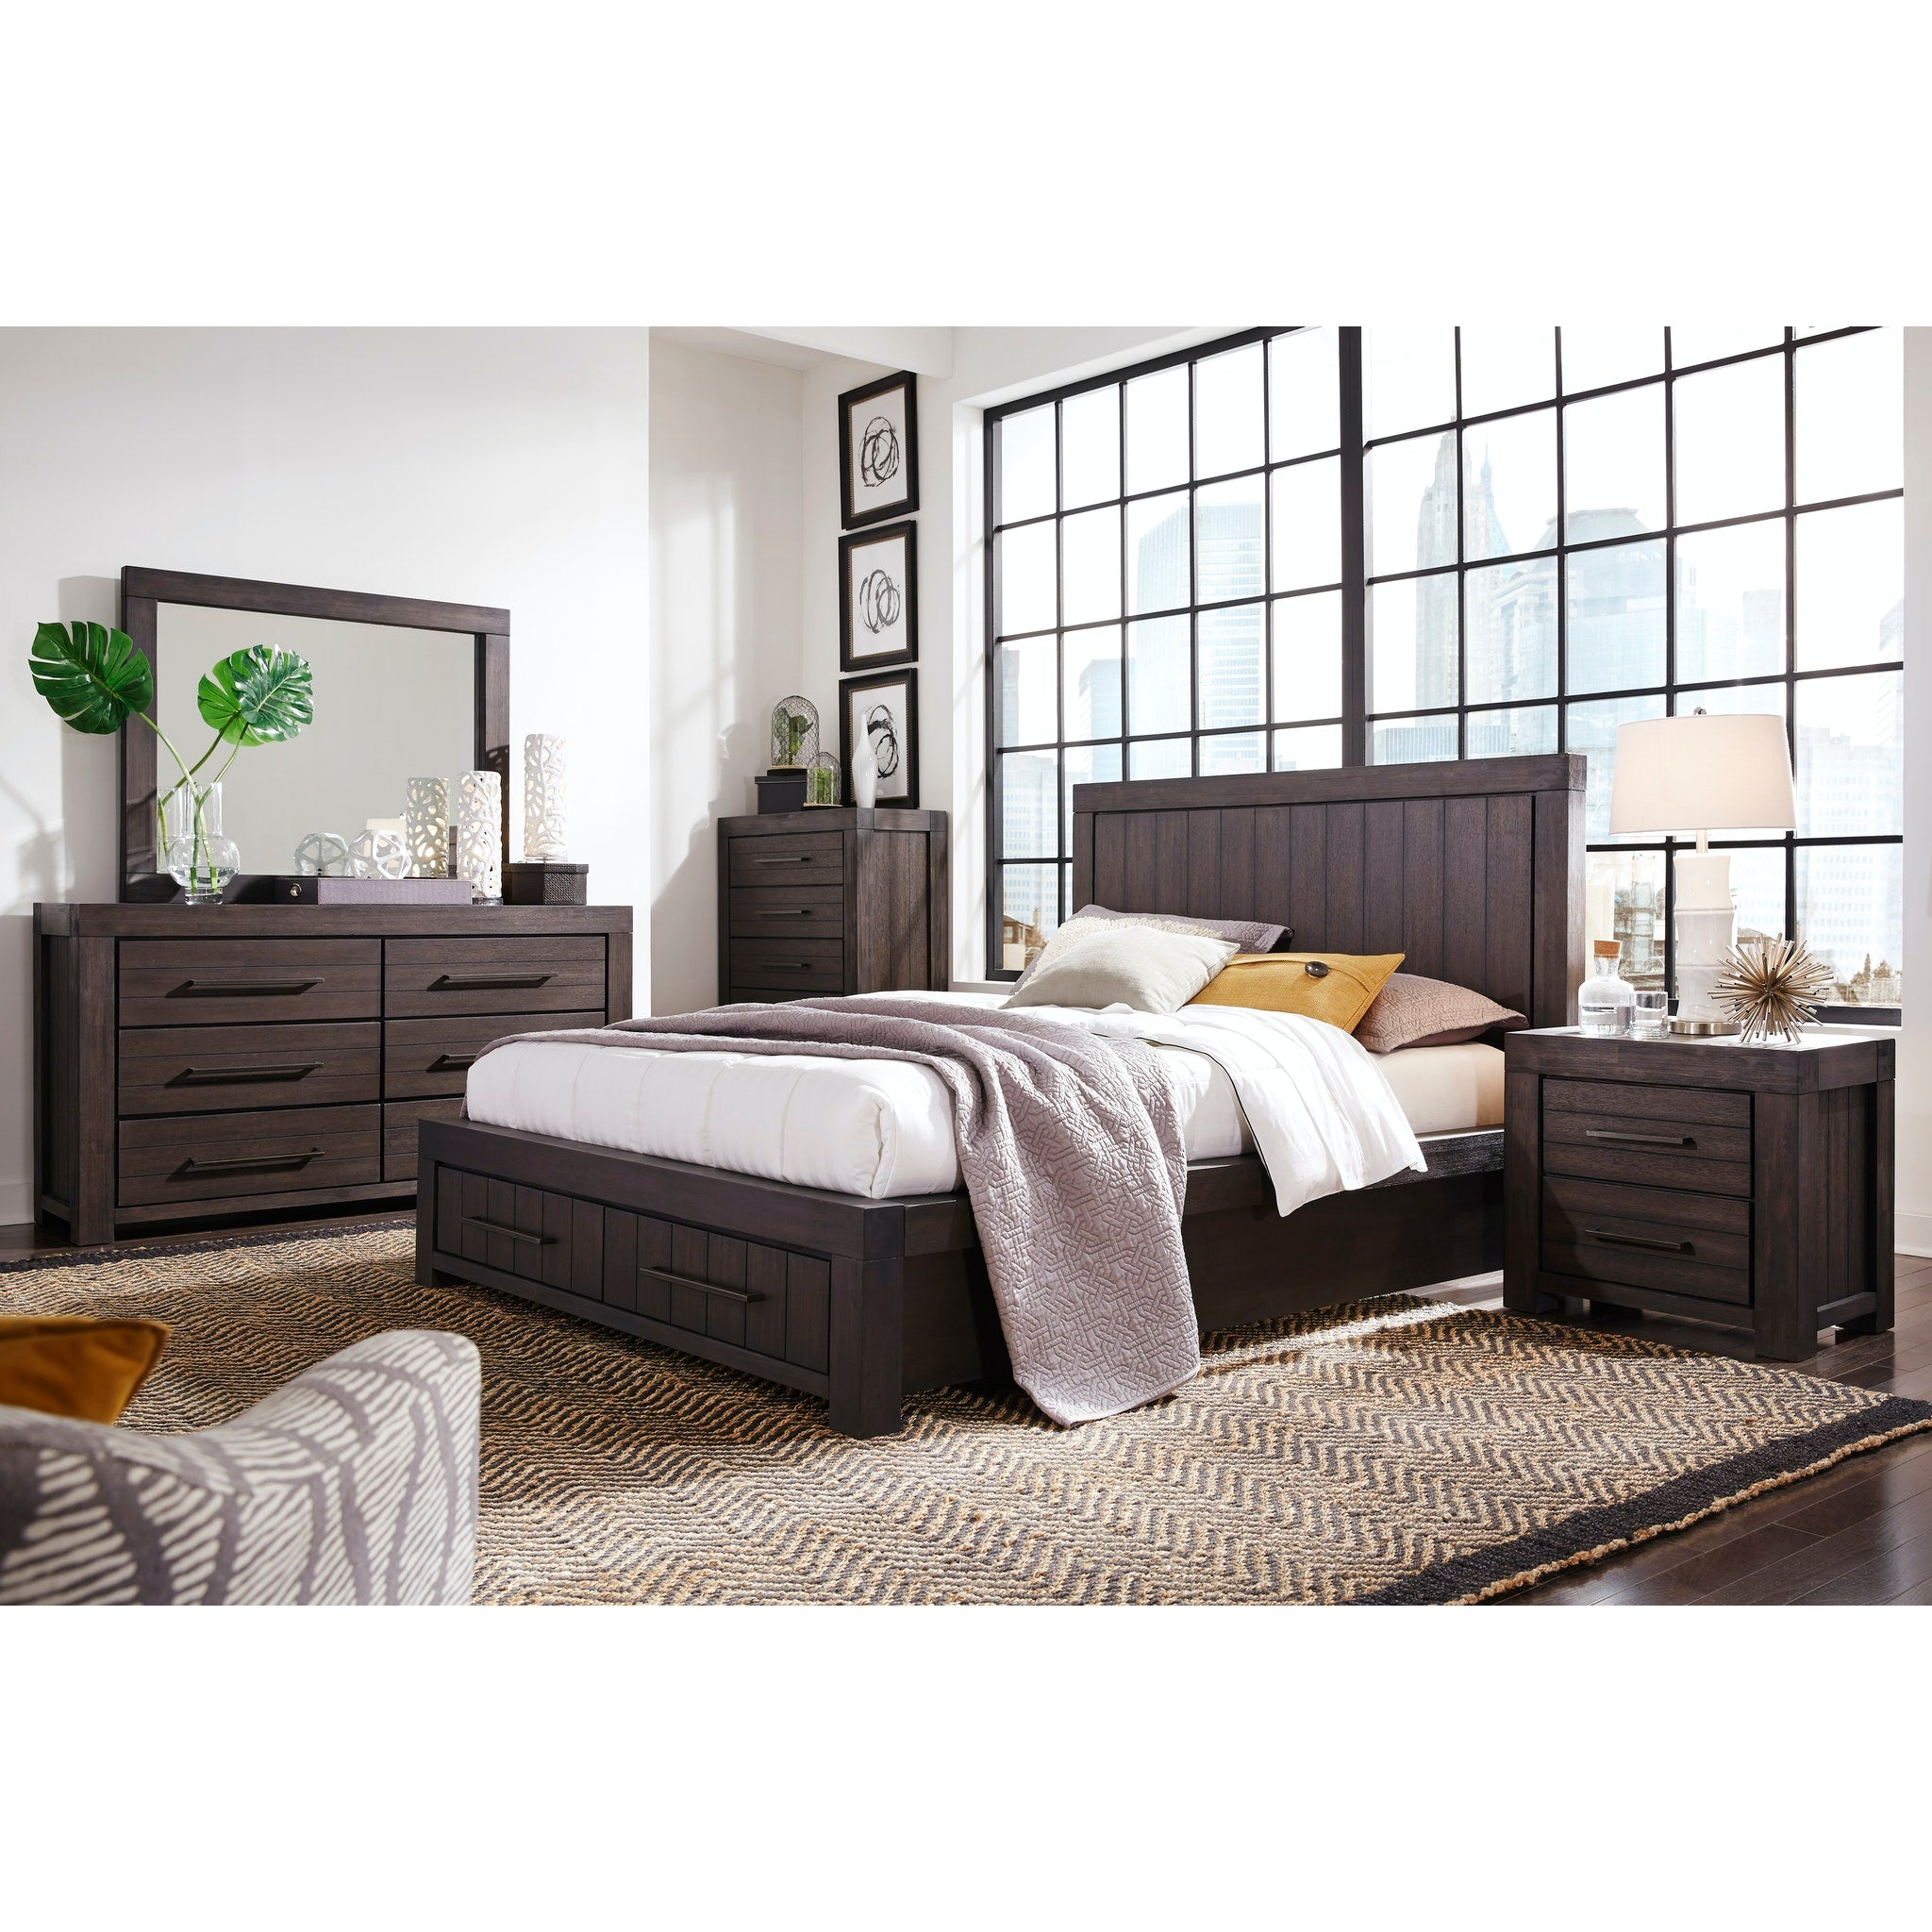 Heath Full-Size Two Drawer Storage Bed in Basalt Grey